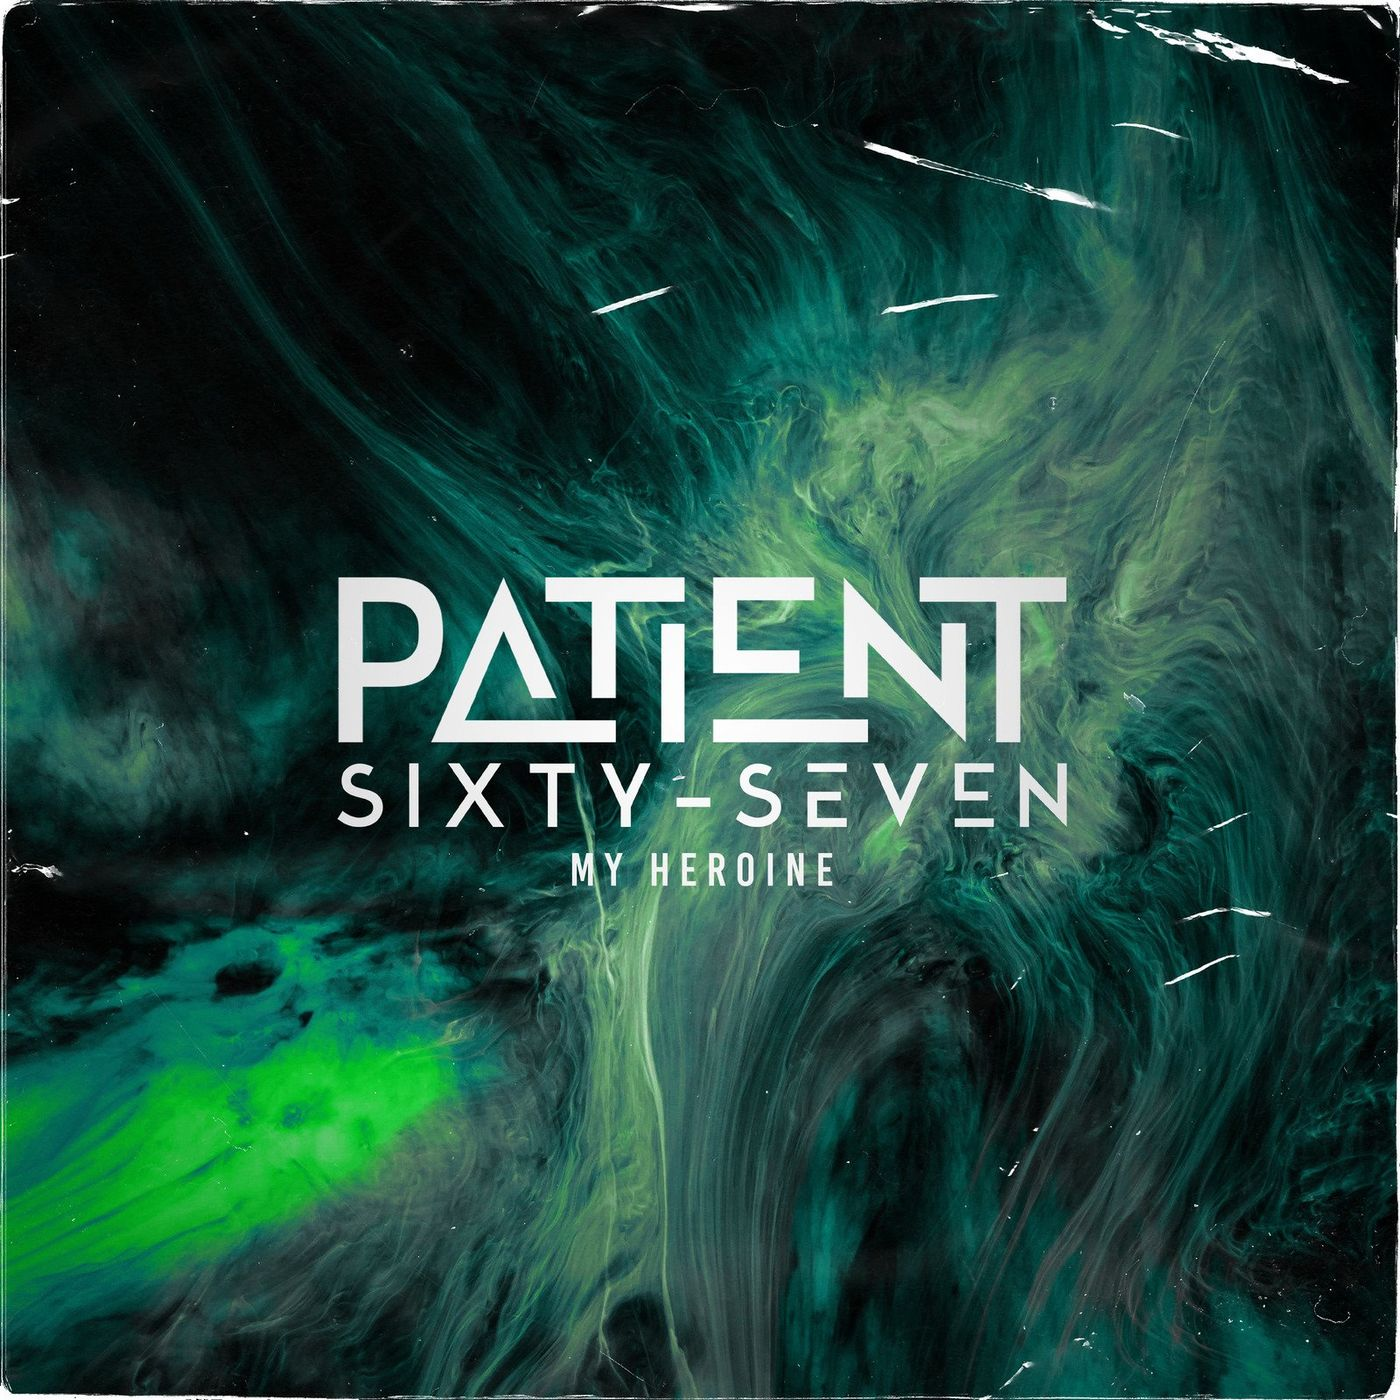 Patient Sixty-Seven - My Heroine [single] (2020)